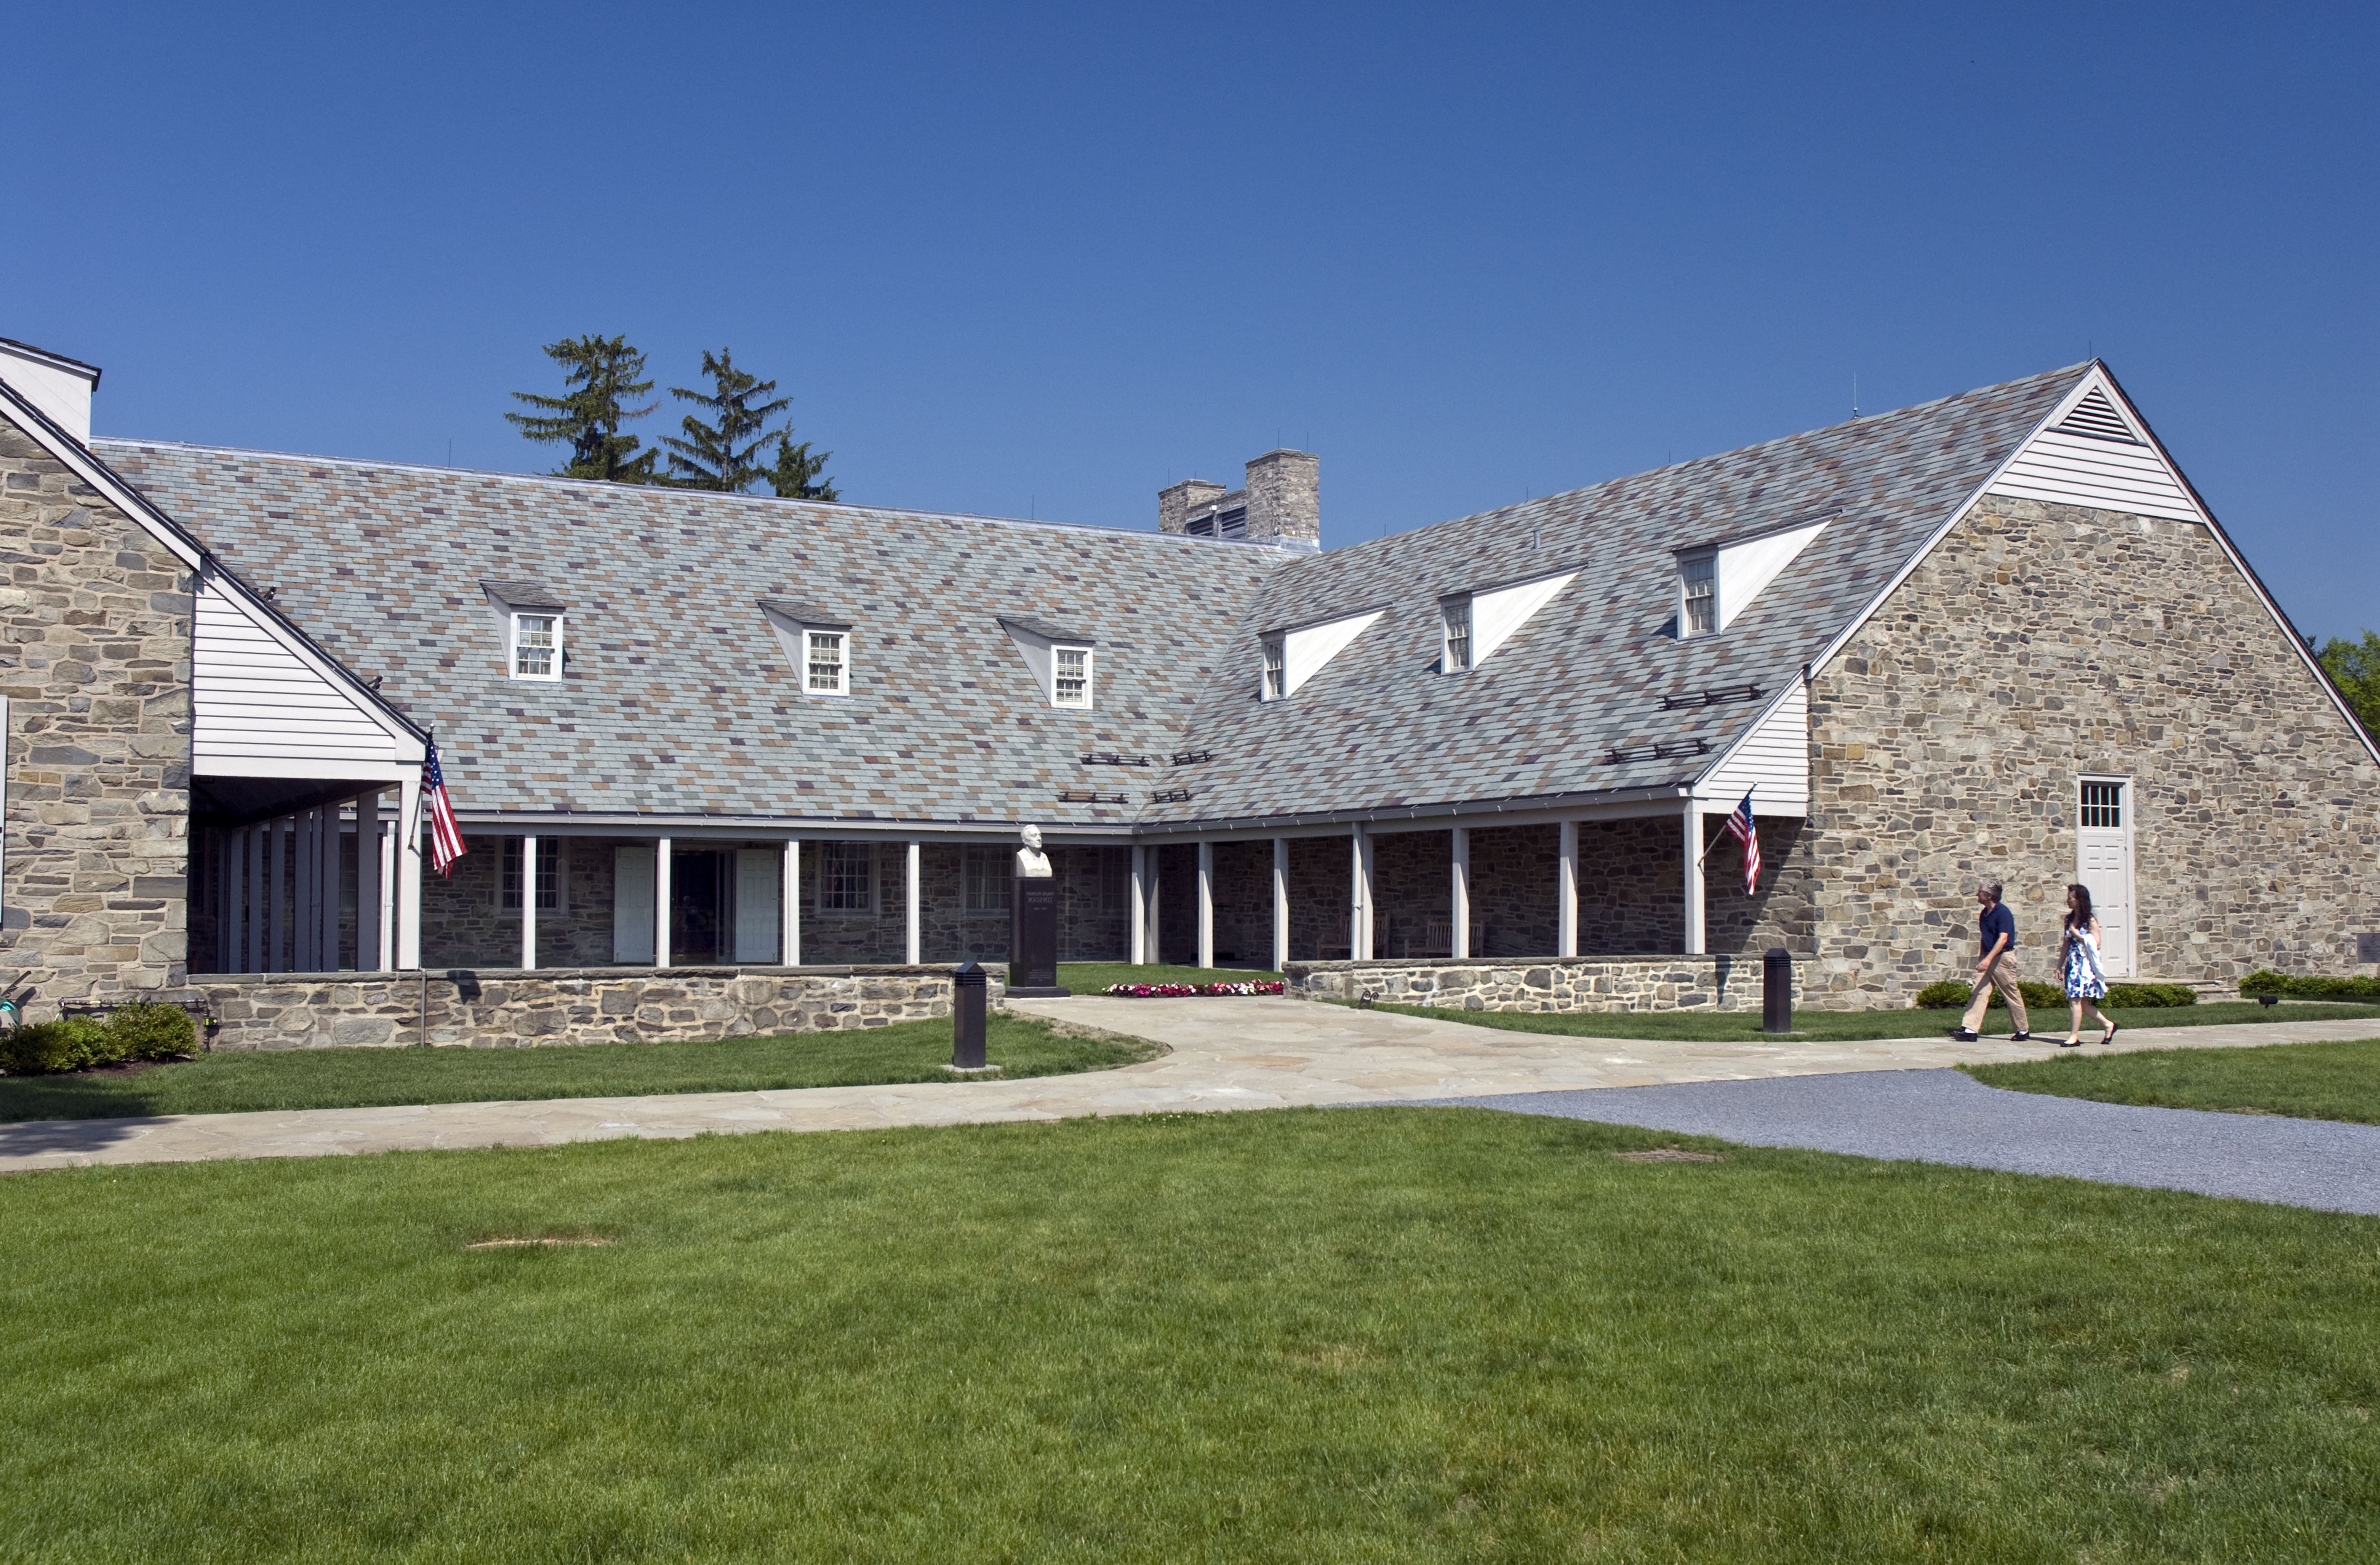 steep grey roof with dormers overhanding a U-shaped building with columned porch